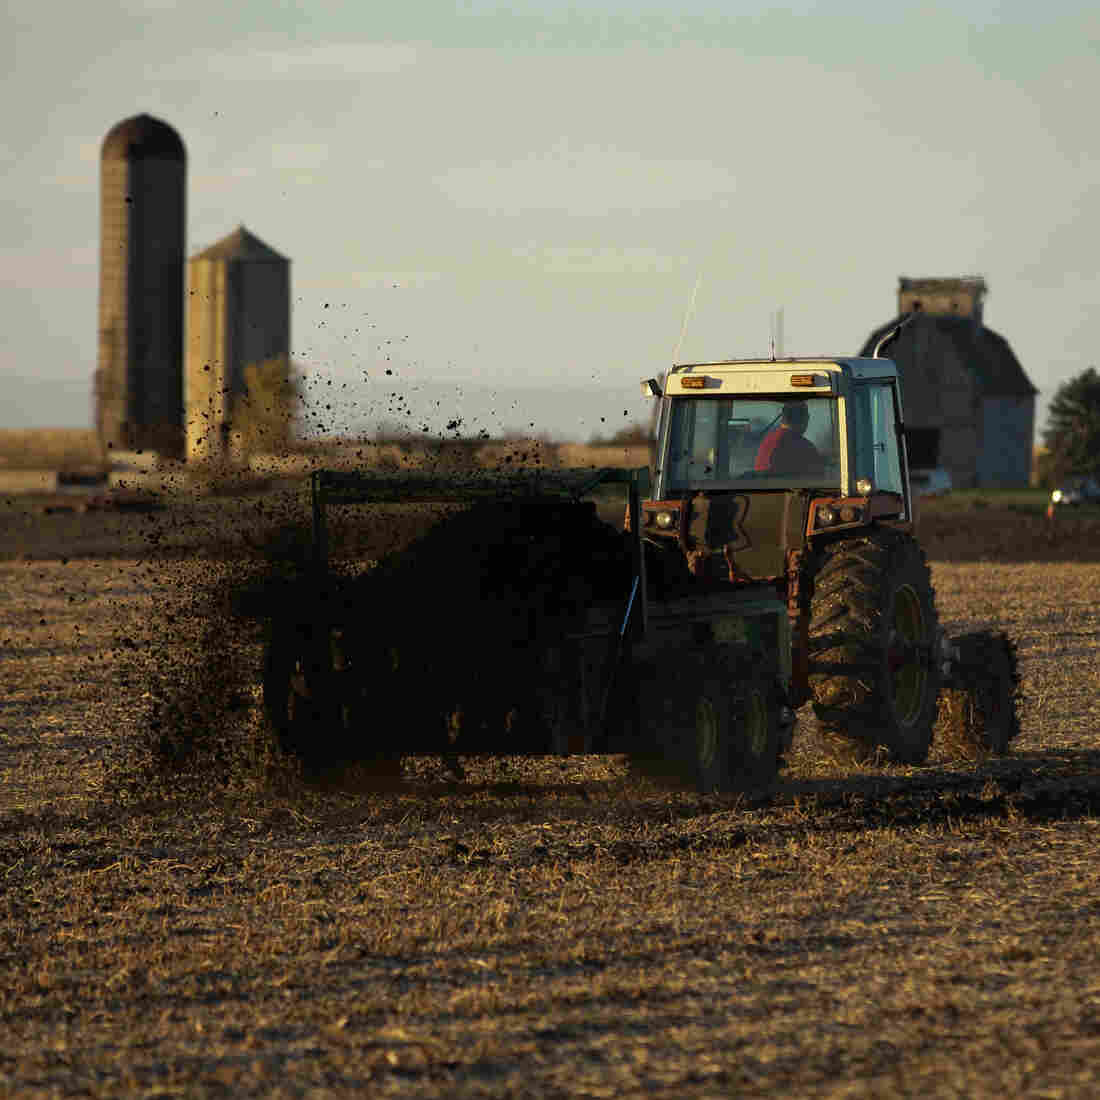 Through the City Land Application of Biosolids Program in Geneva, Ill., the fertilizer supplement is provided to local farmers at no cost.